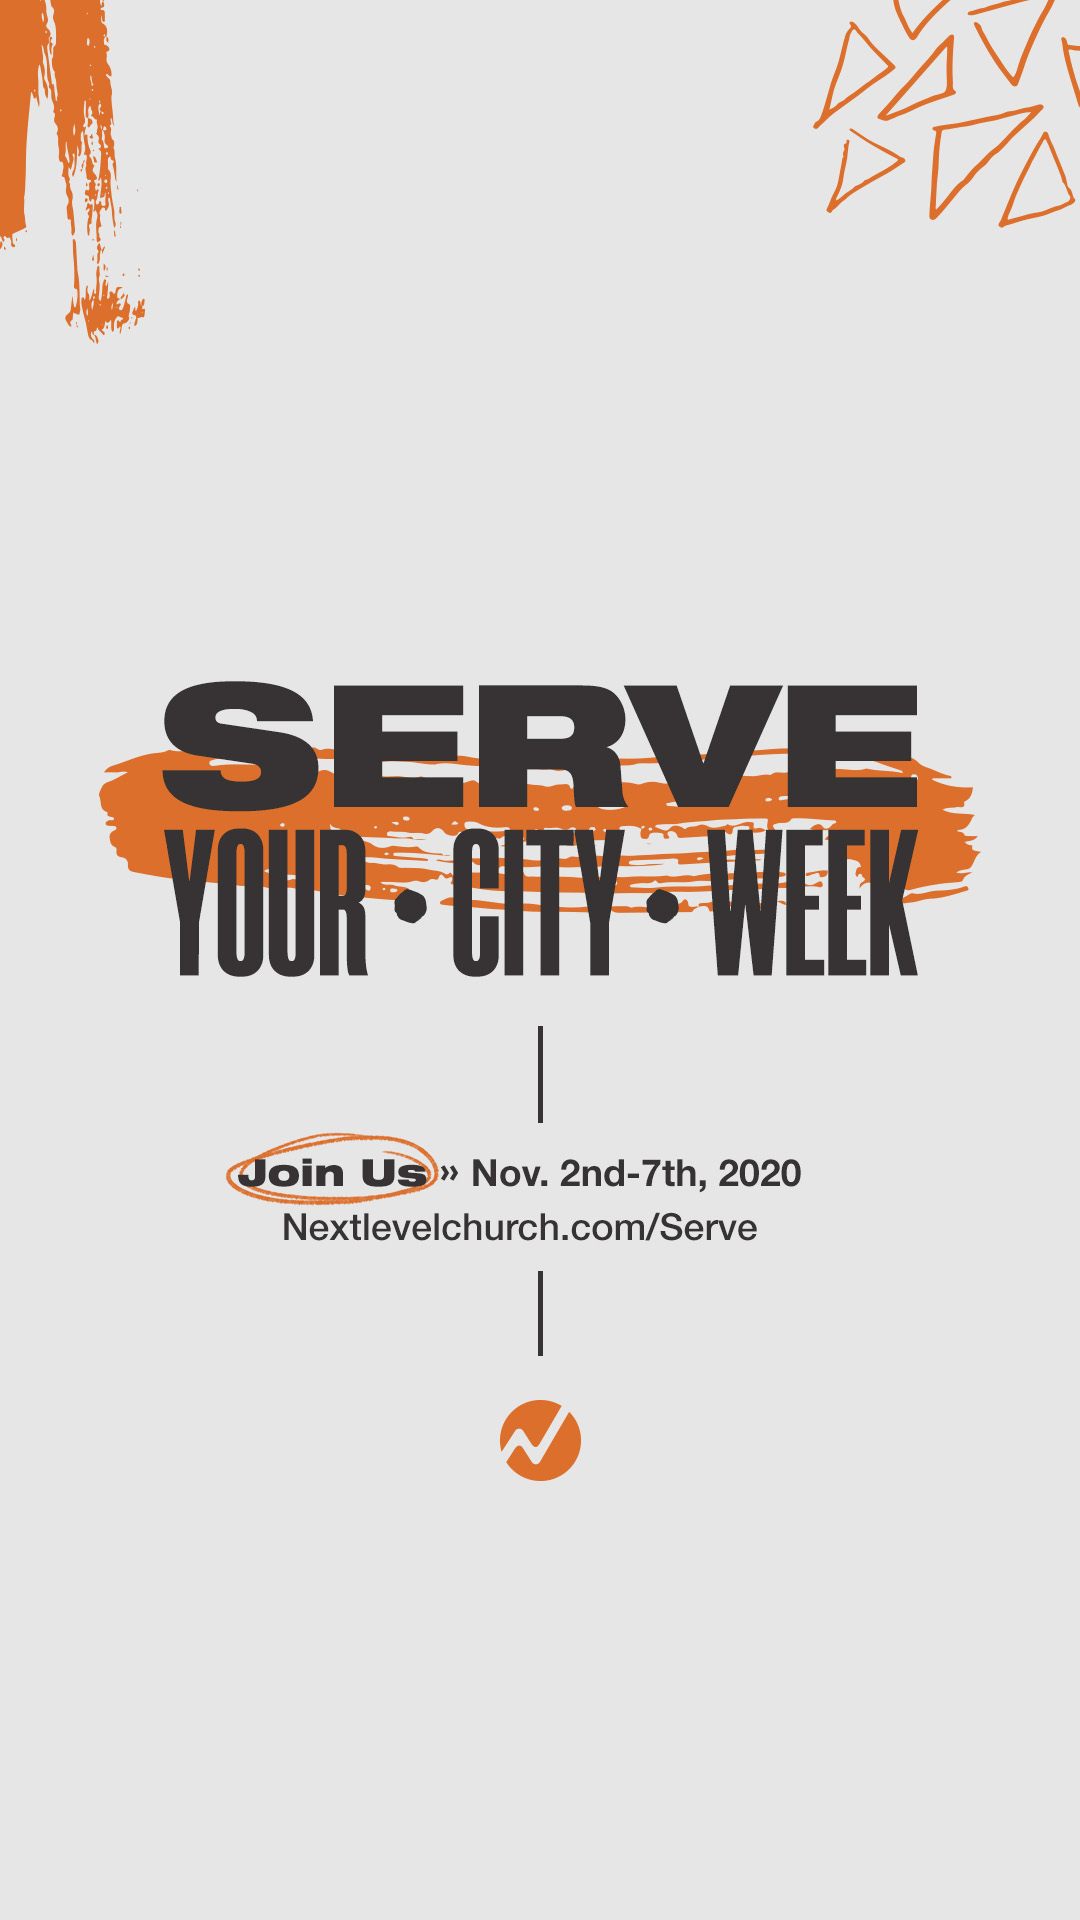 Serve Your City - Updated - 1080x1920 - Title